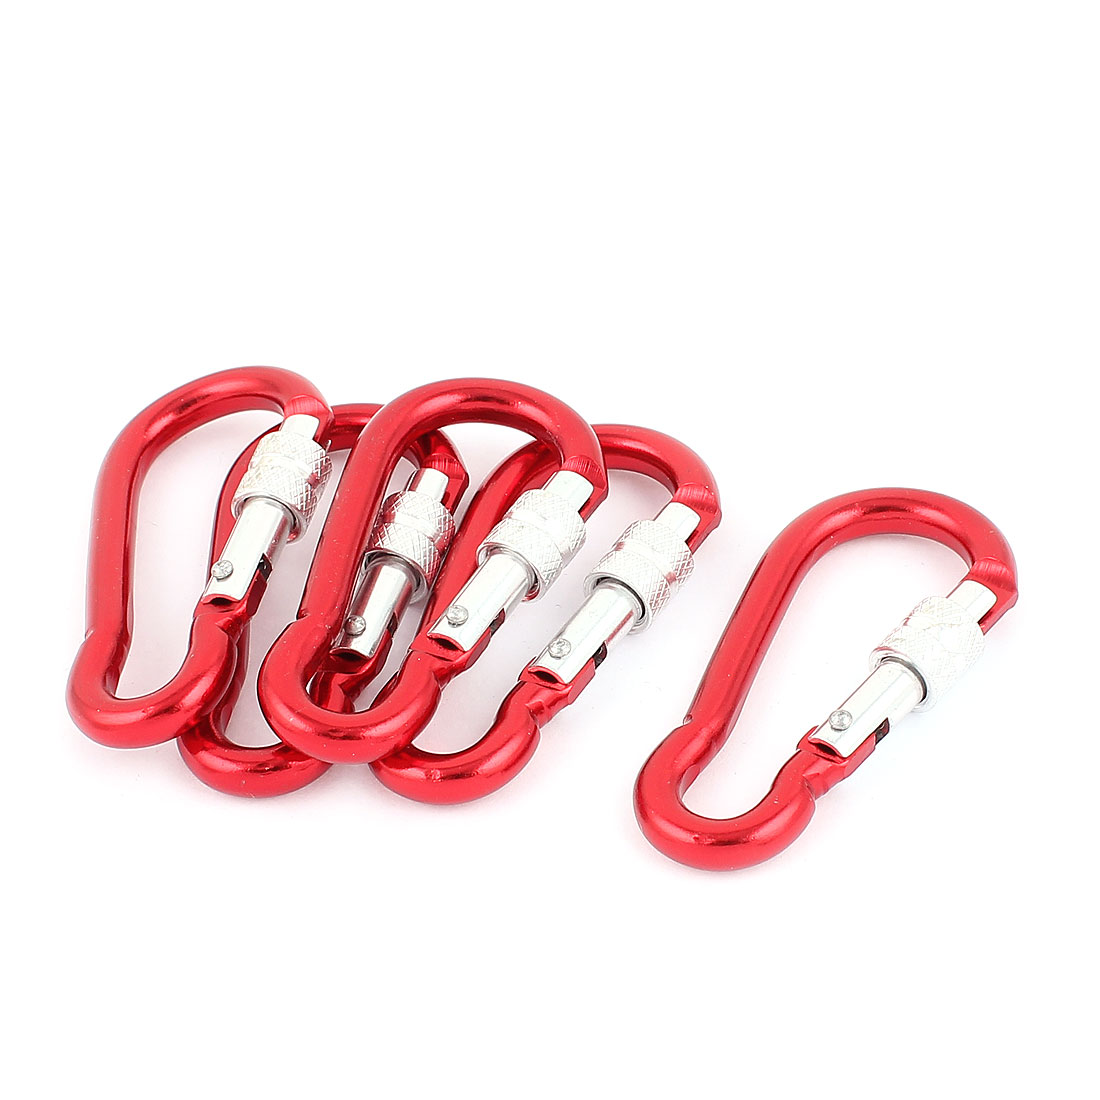 Outdoor Hiking Snap Lock Carabiner Hook Clip Keyring Red 5pcs